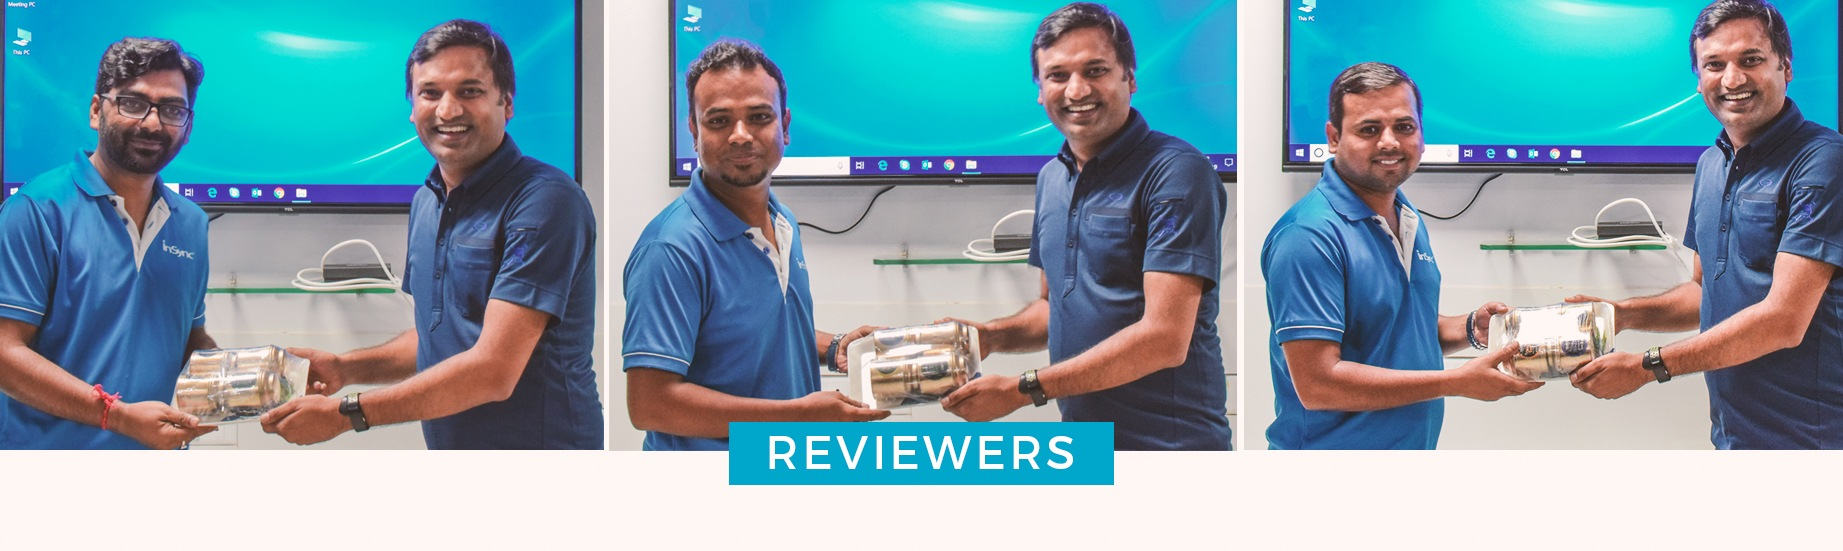 reviewers-insync-hackathon-2019